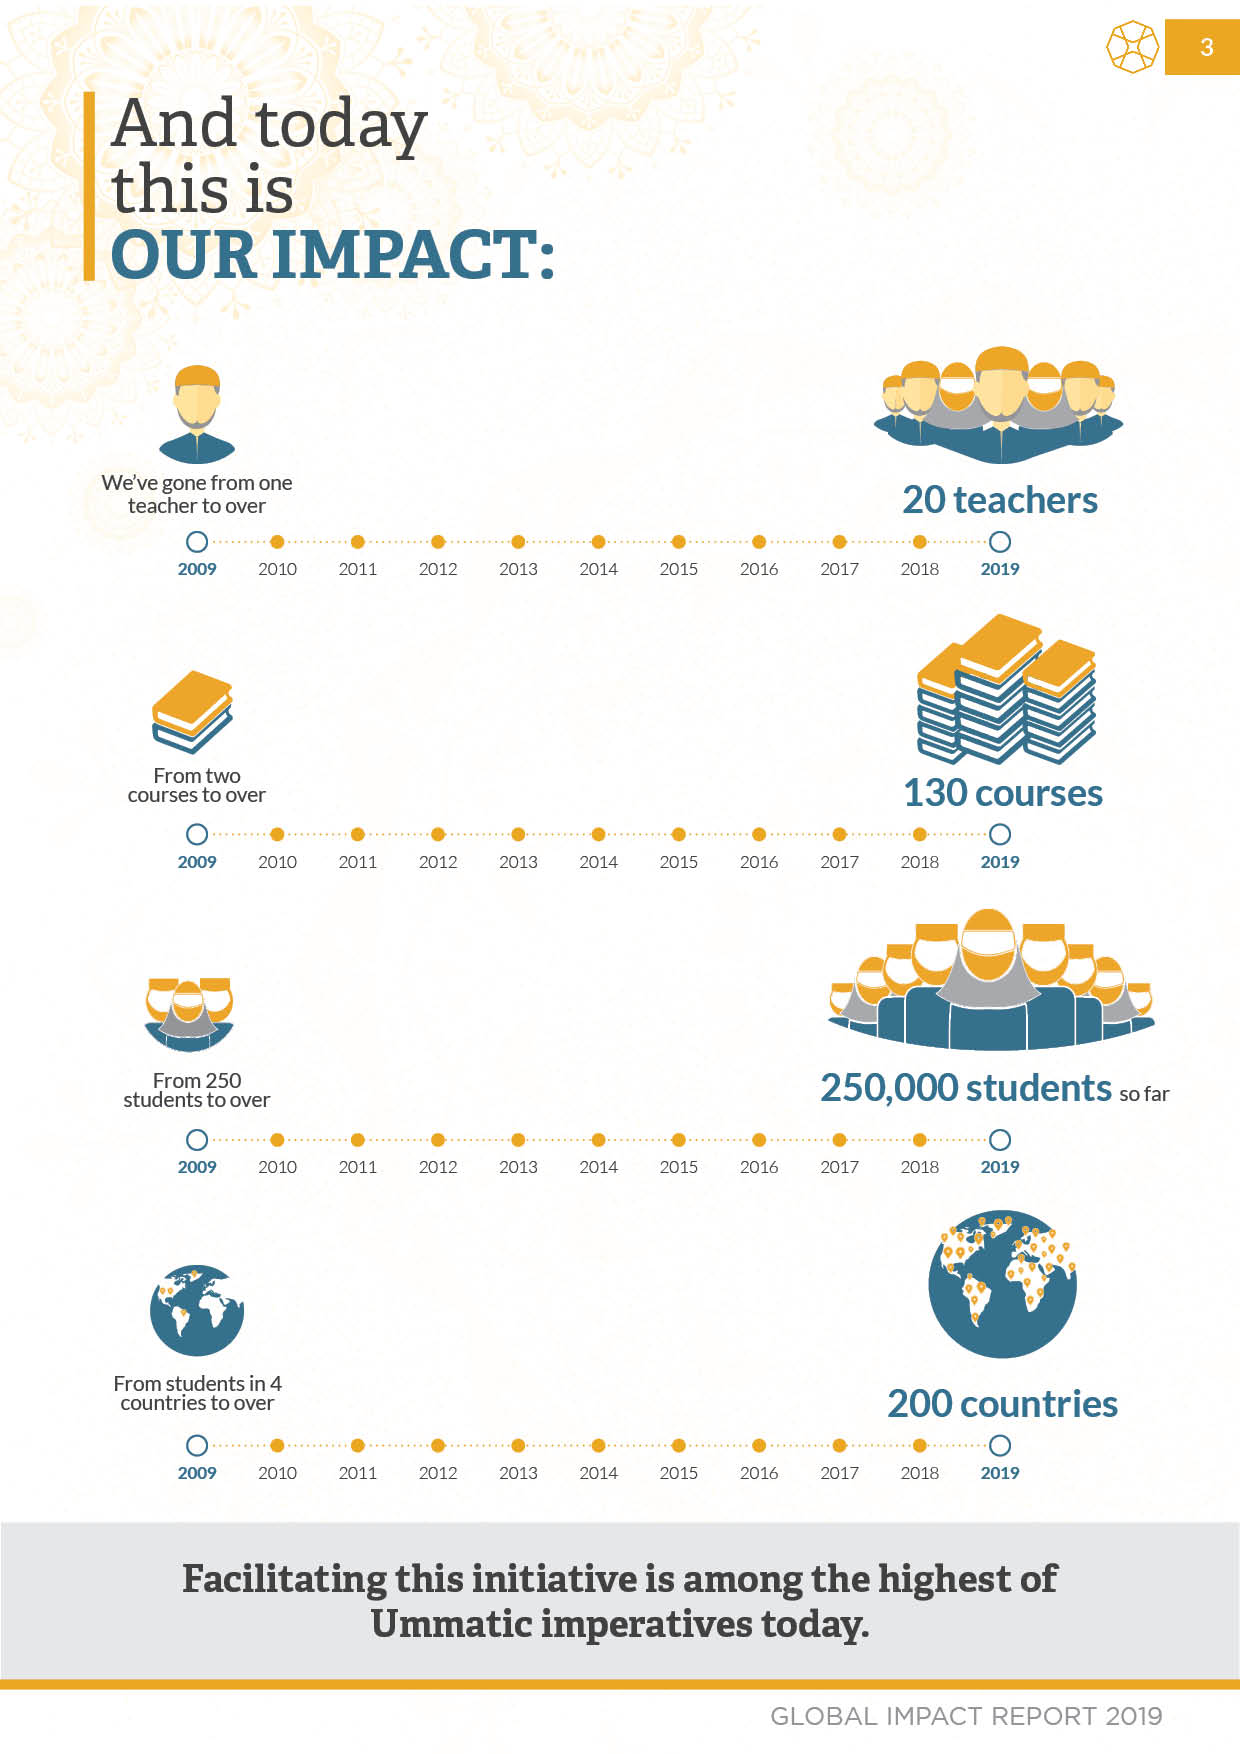 Our Impact (SeekersGuidance)